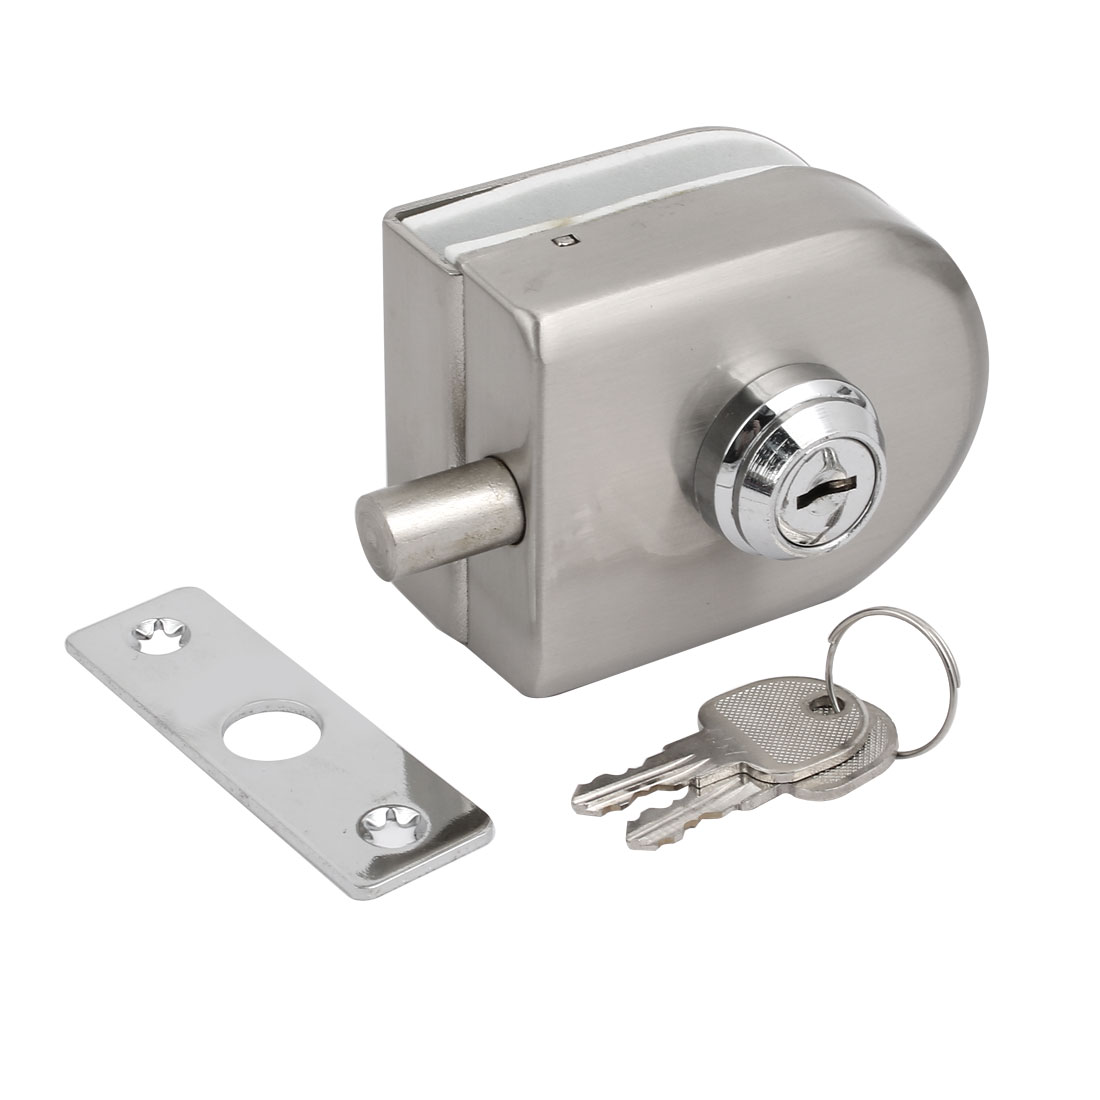 10mm-12mm Glass Thickness Stainless Steel Oval Shape Door Lock Set